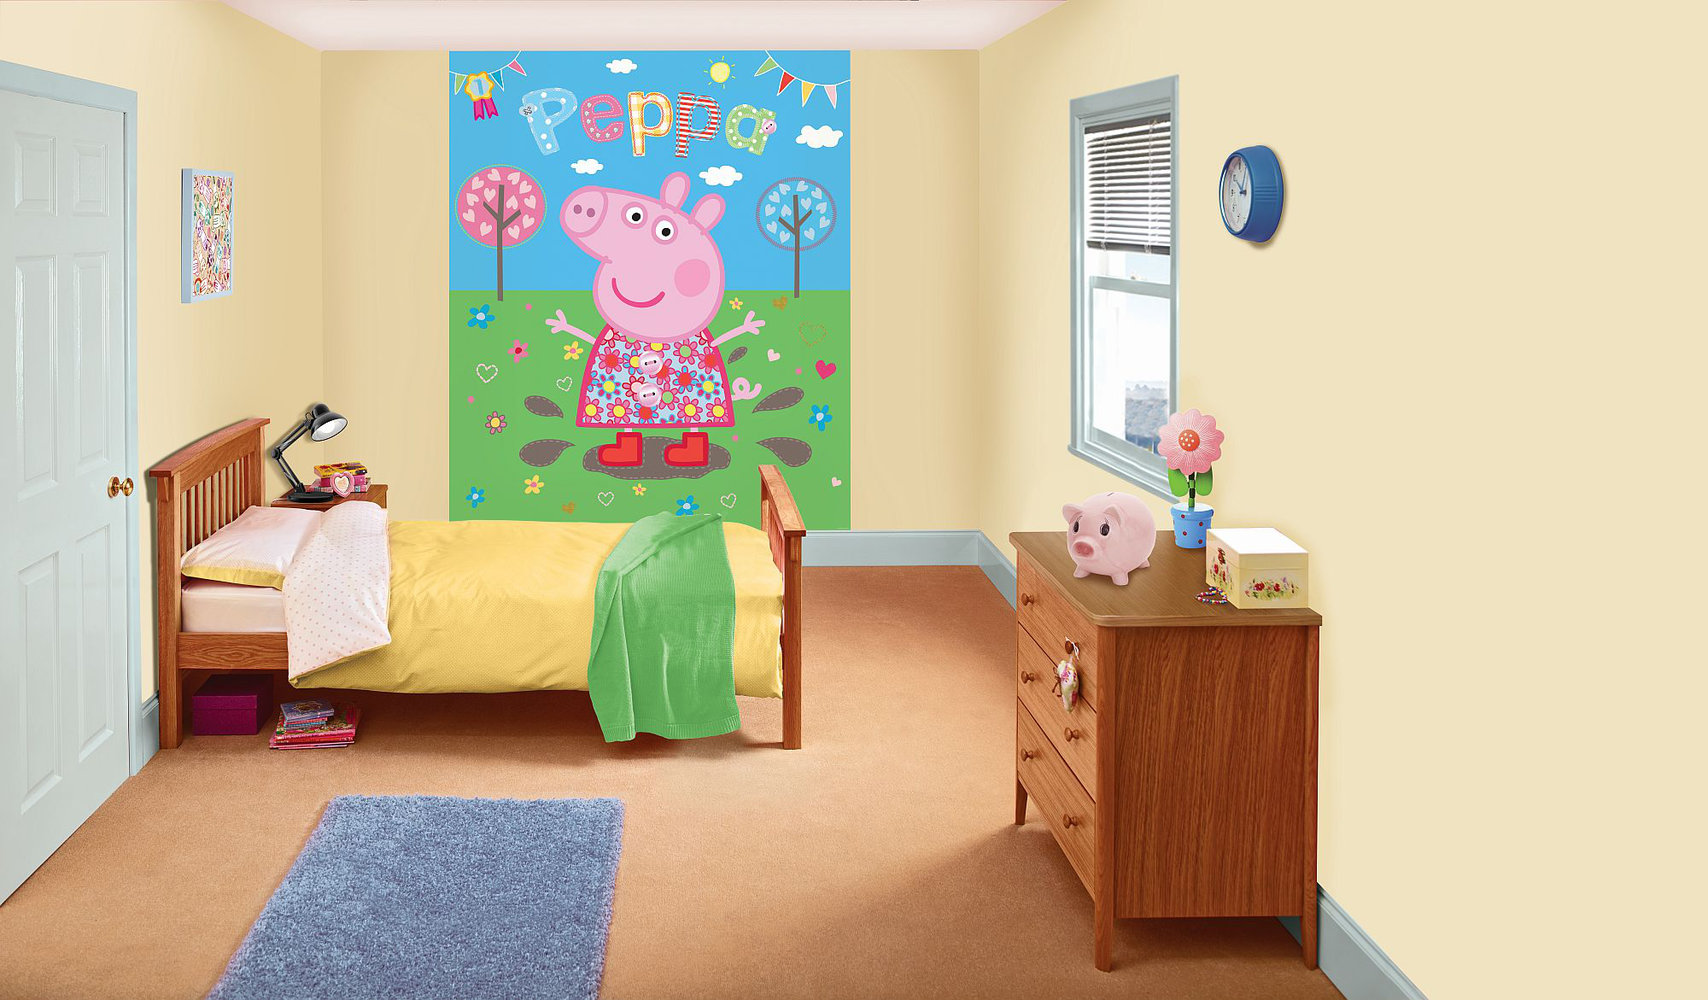 peppa pig bedroom in a box by walltastic : wallpaper direct